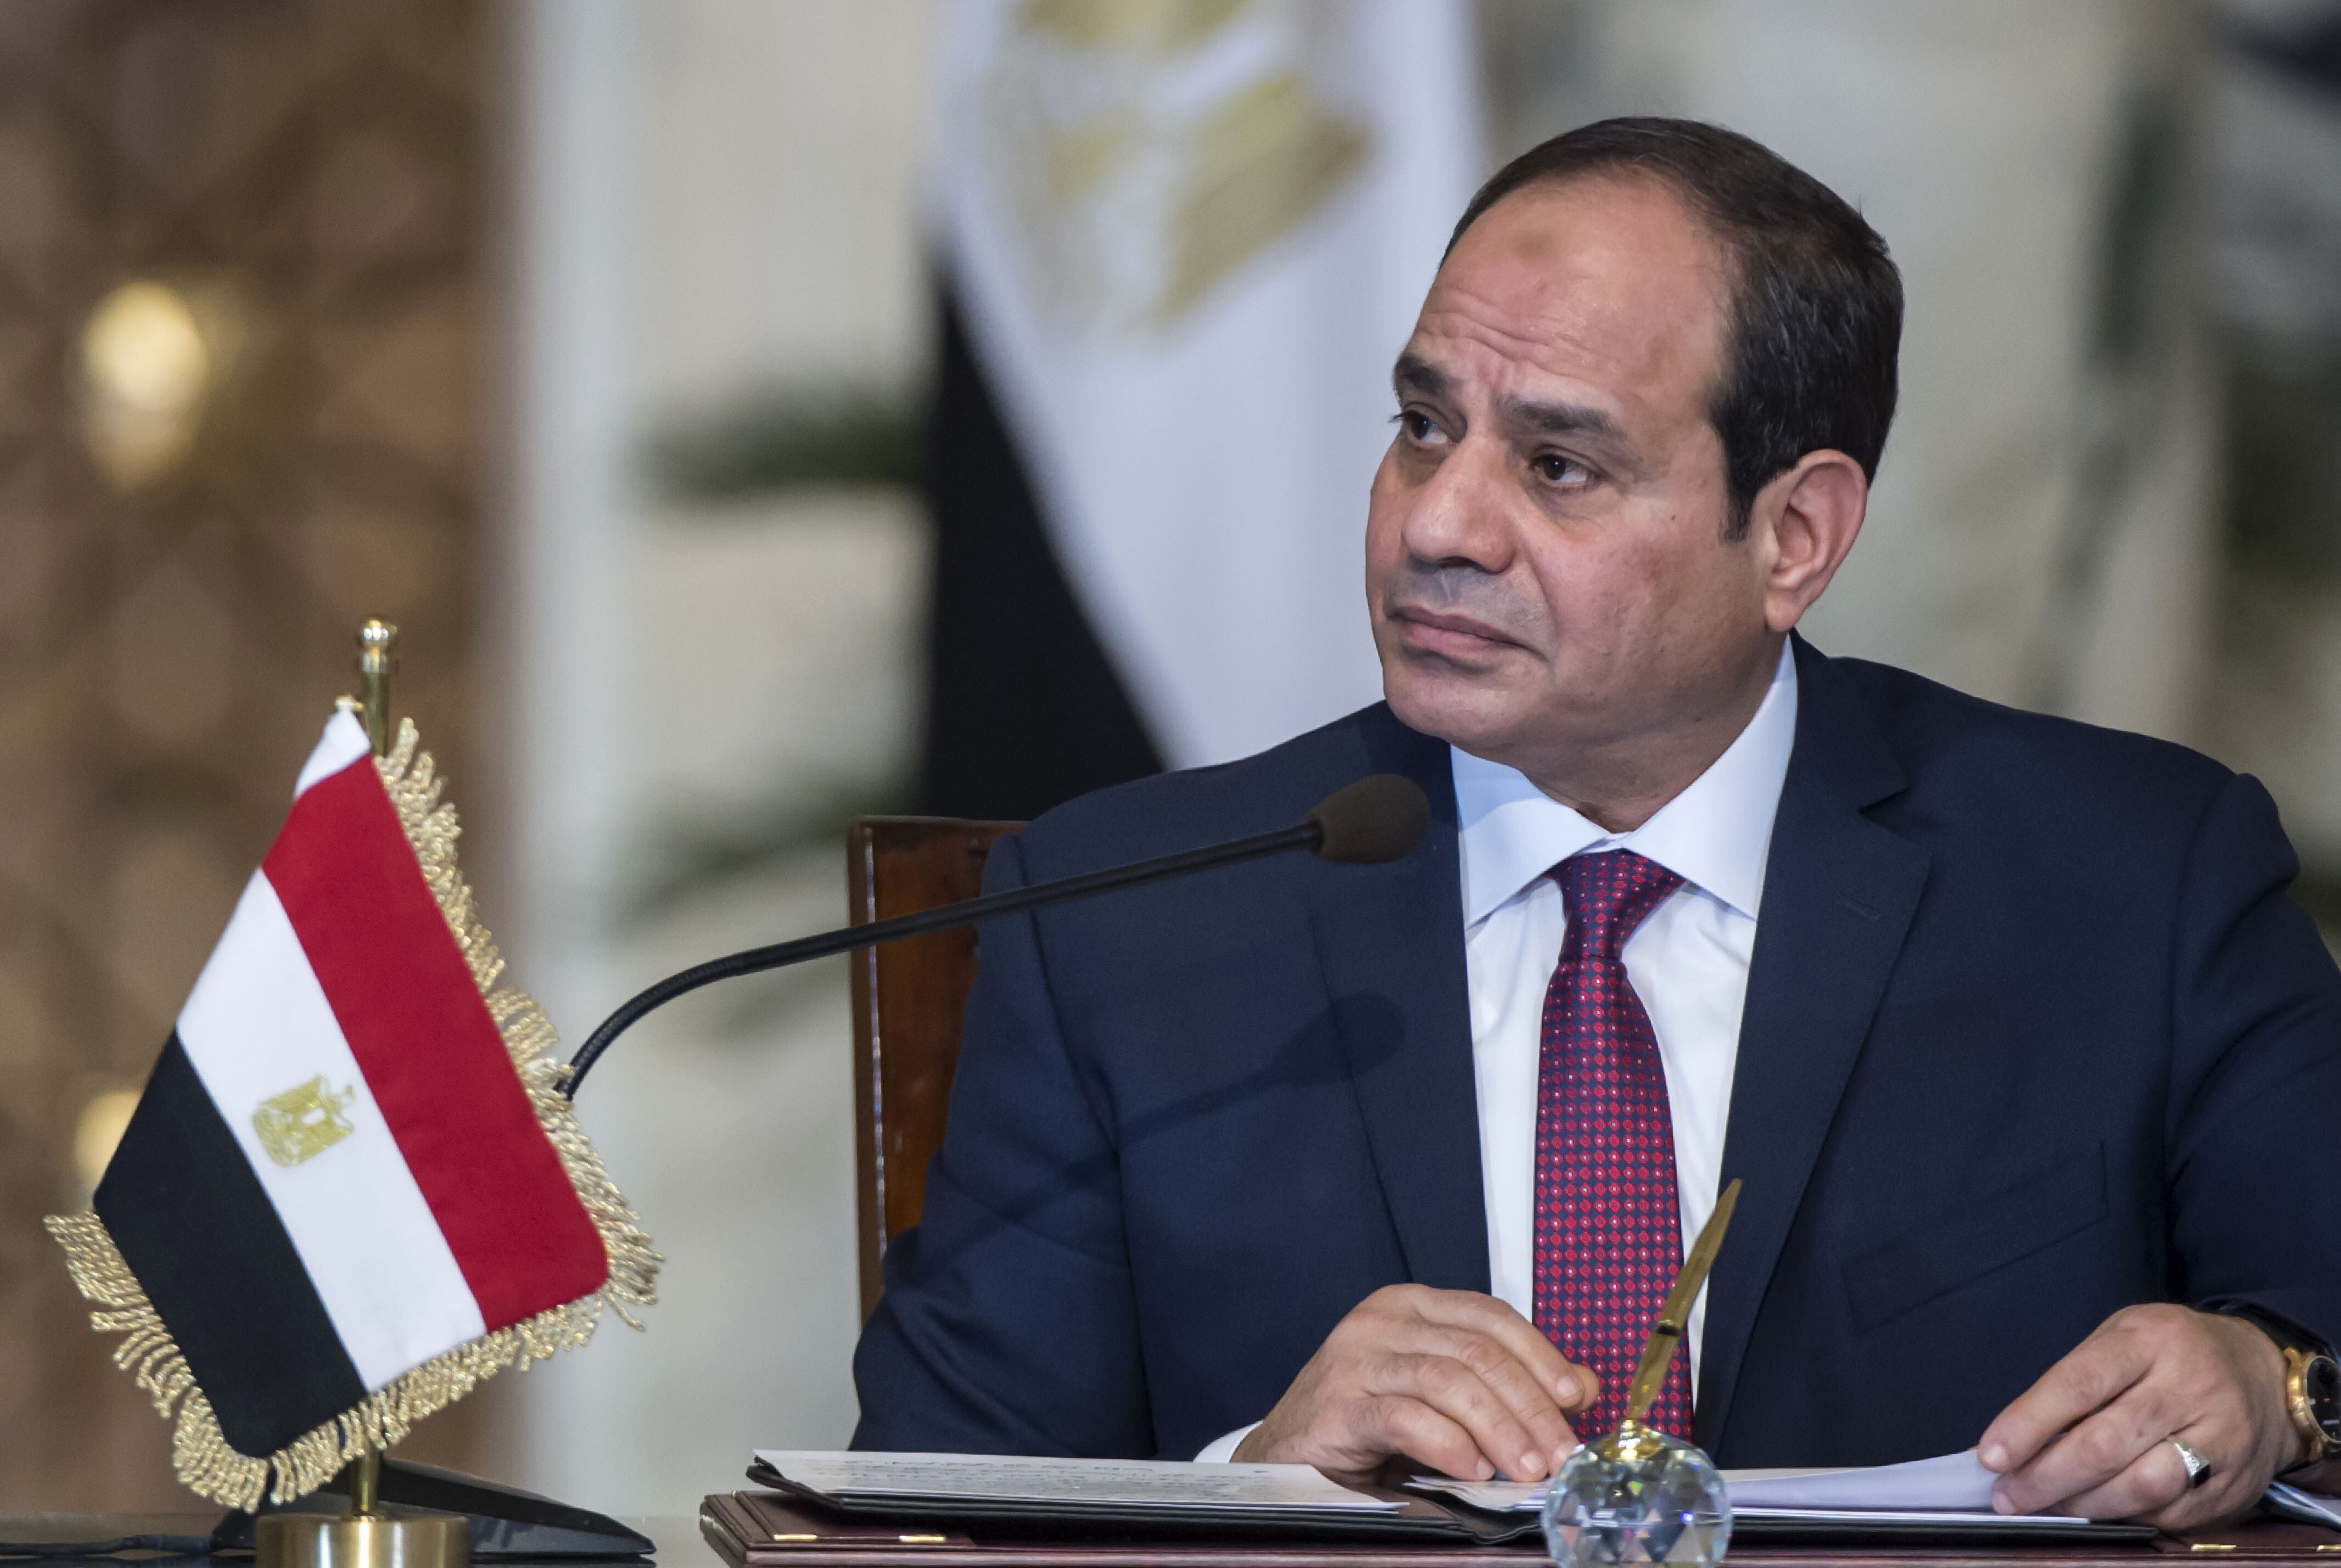 Biden administration expected to release aid to Egypt despite human rights concerns